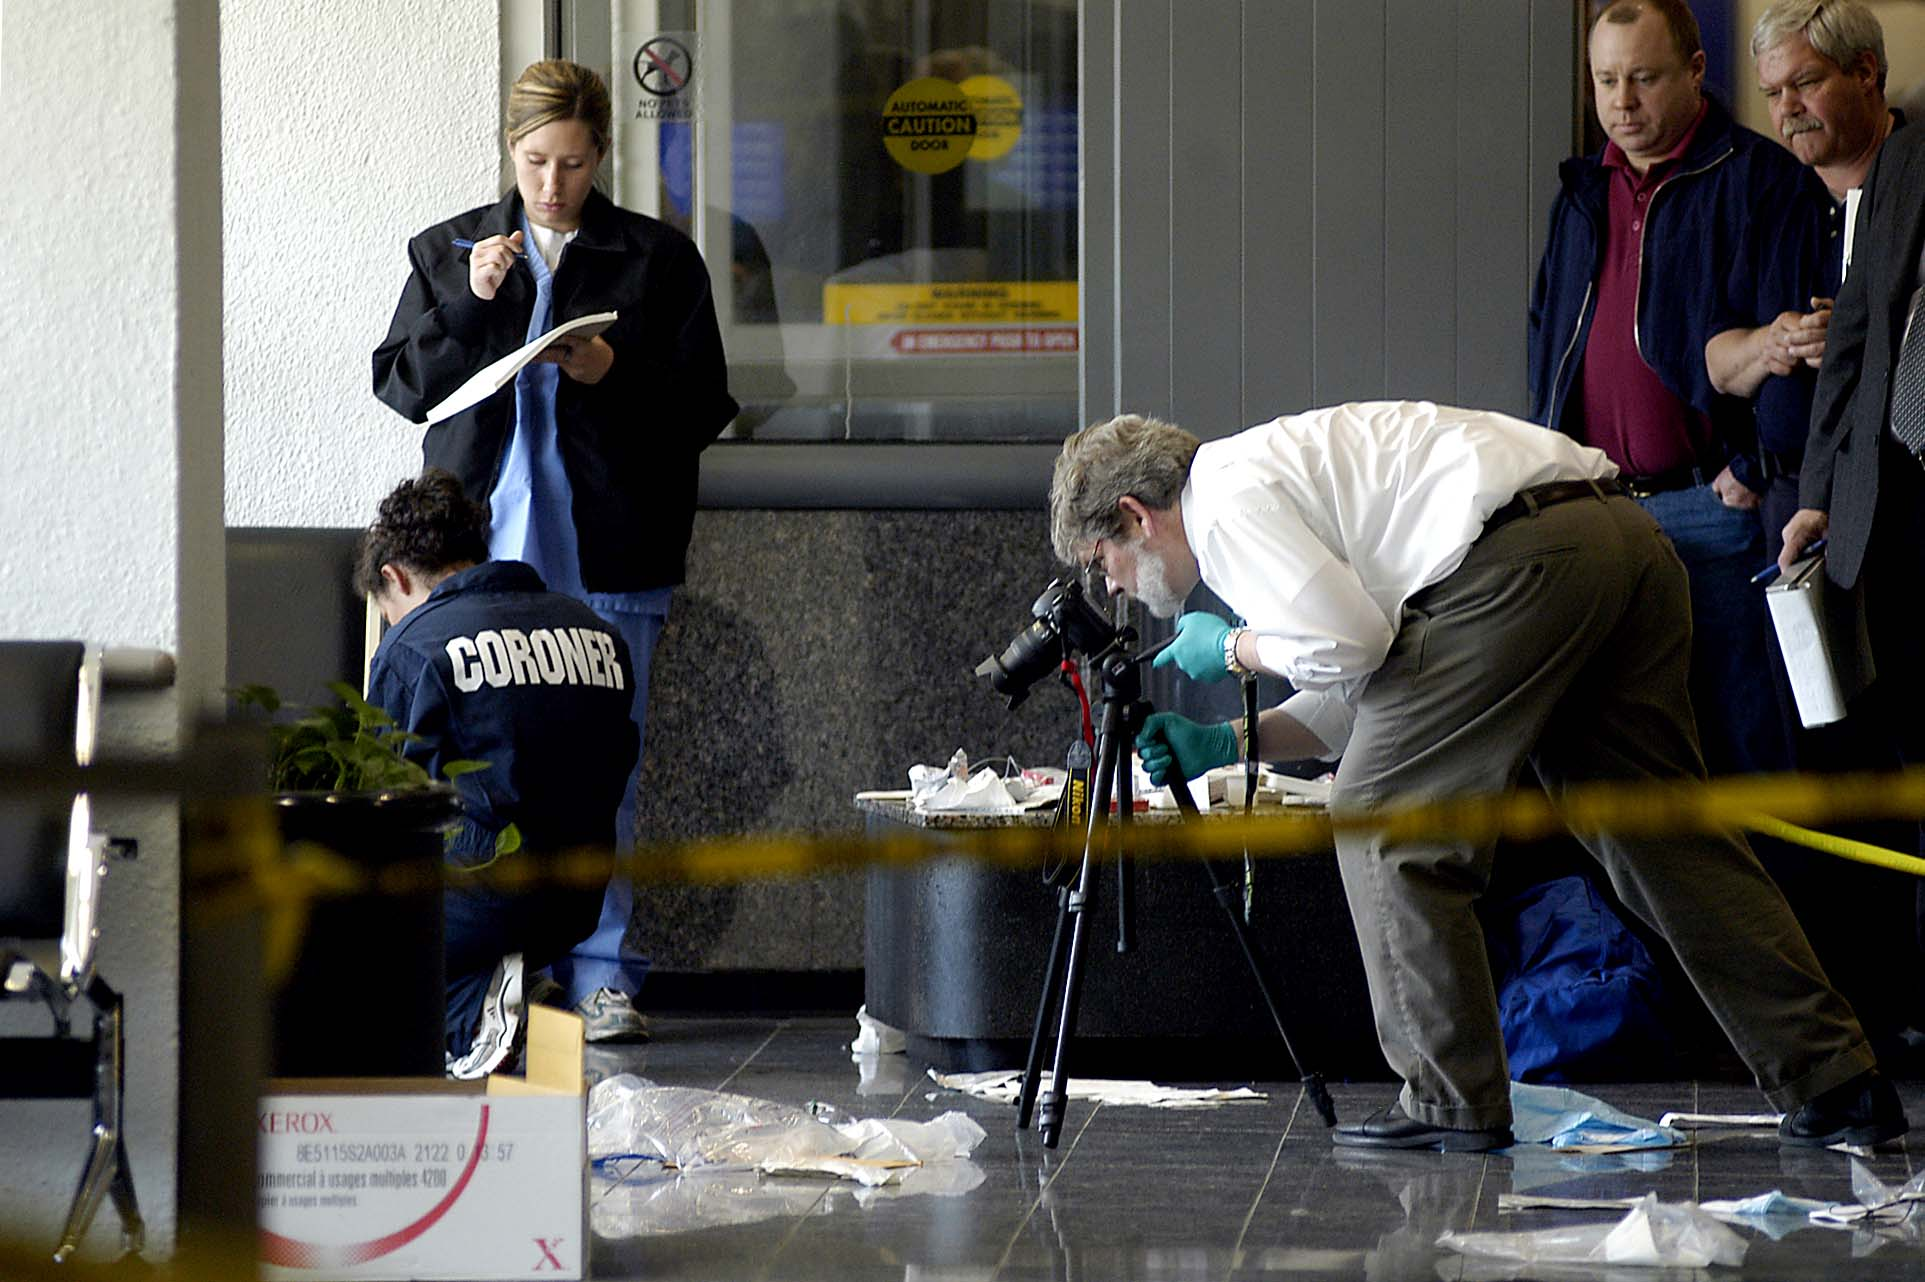 An investigator photographs evidence at Cleveland Hopkins International Airport where a police officer shot and killed Kenneth Calloway, 38, of Cleveland. Calloway argued with a Delta employee after trying unsuccessfully to buy a ticket. He went to the adjacent United Airlines counter and bought a ticket to Chicago, where employees notified the police. In a confrontation, Calloway grabbed an officer's gun and shot a patrolman Steve Walker, 52, before he was killed by a third officer.